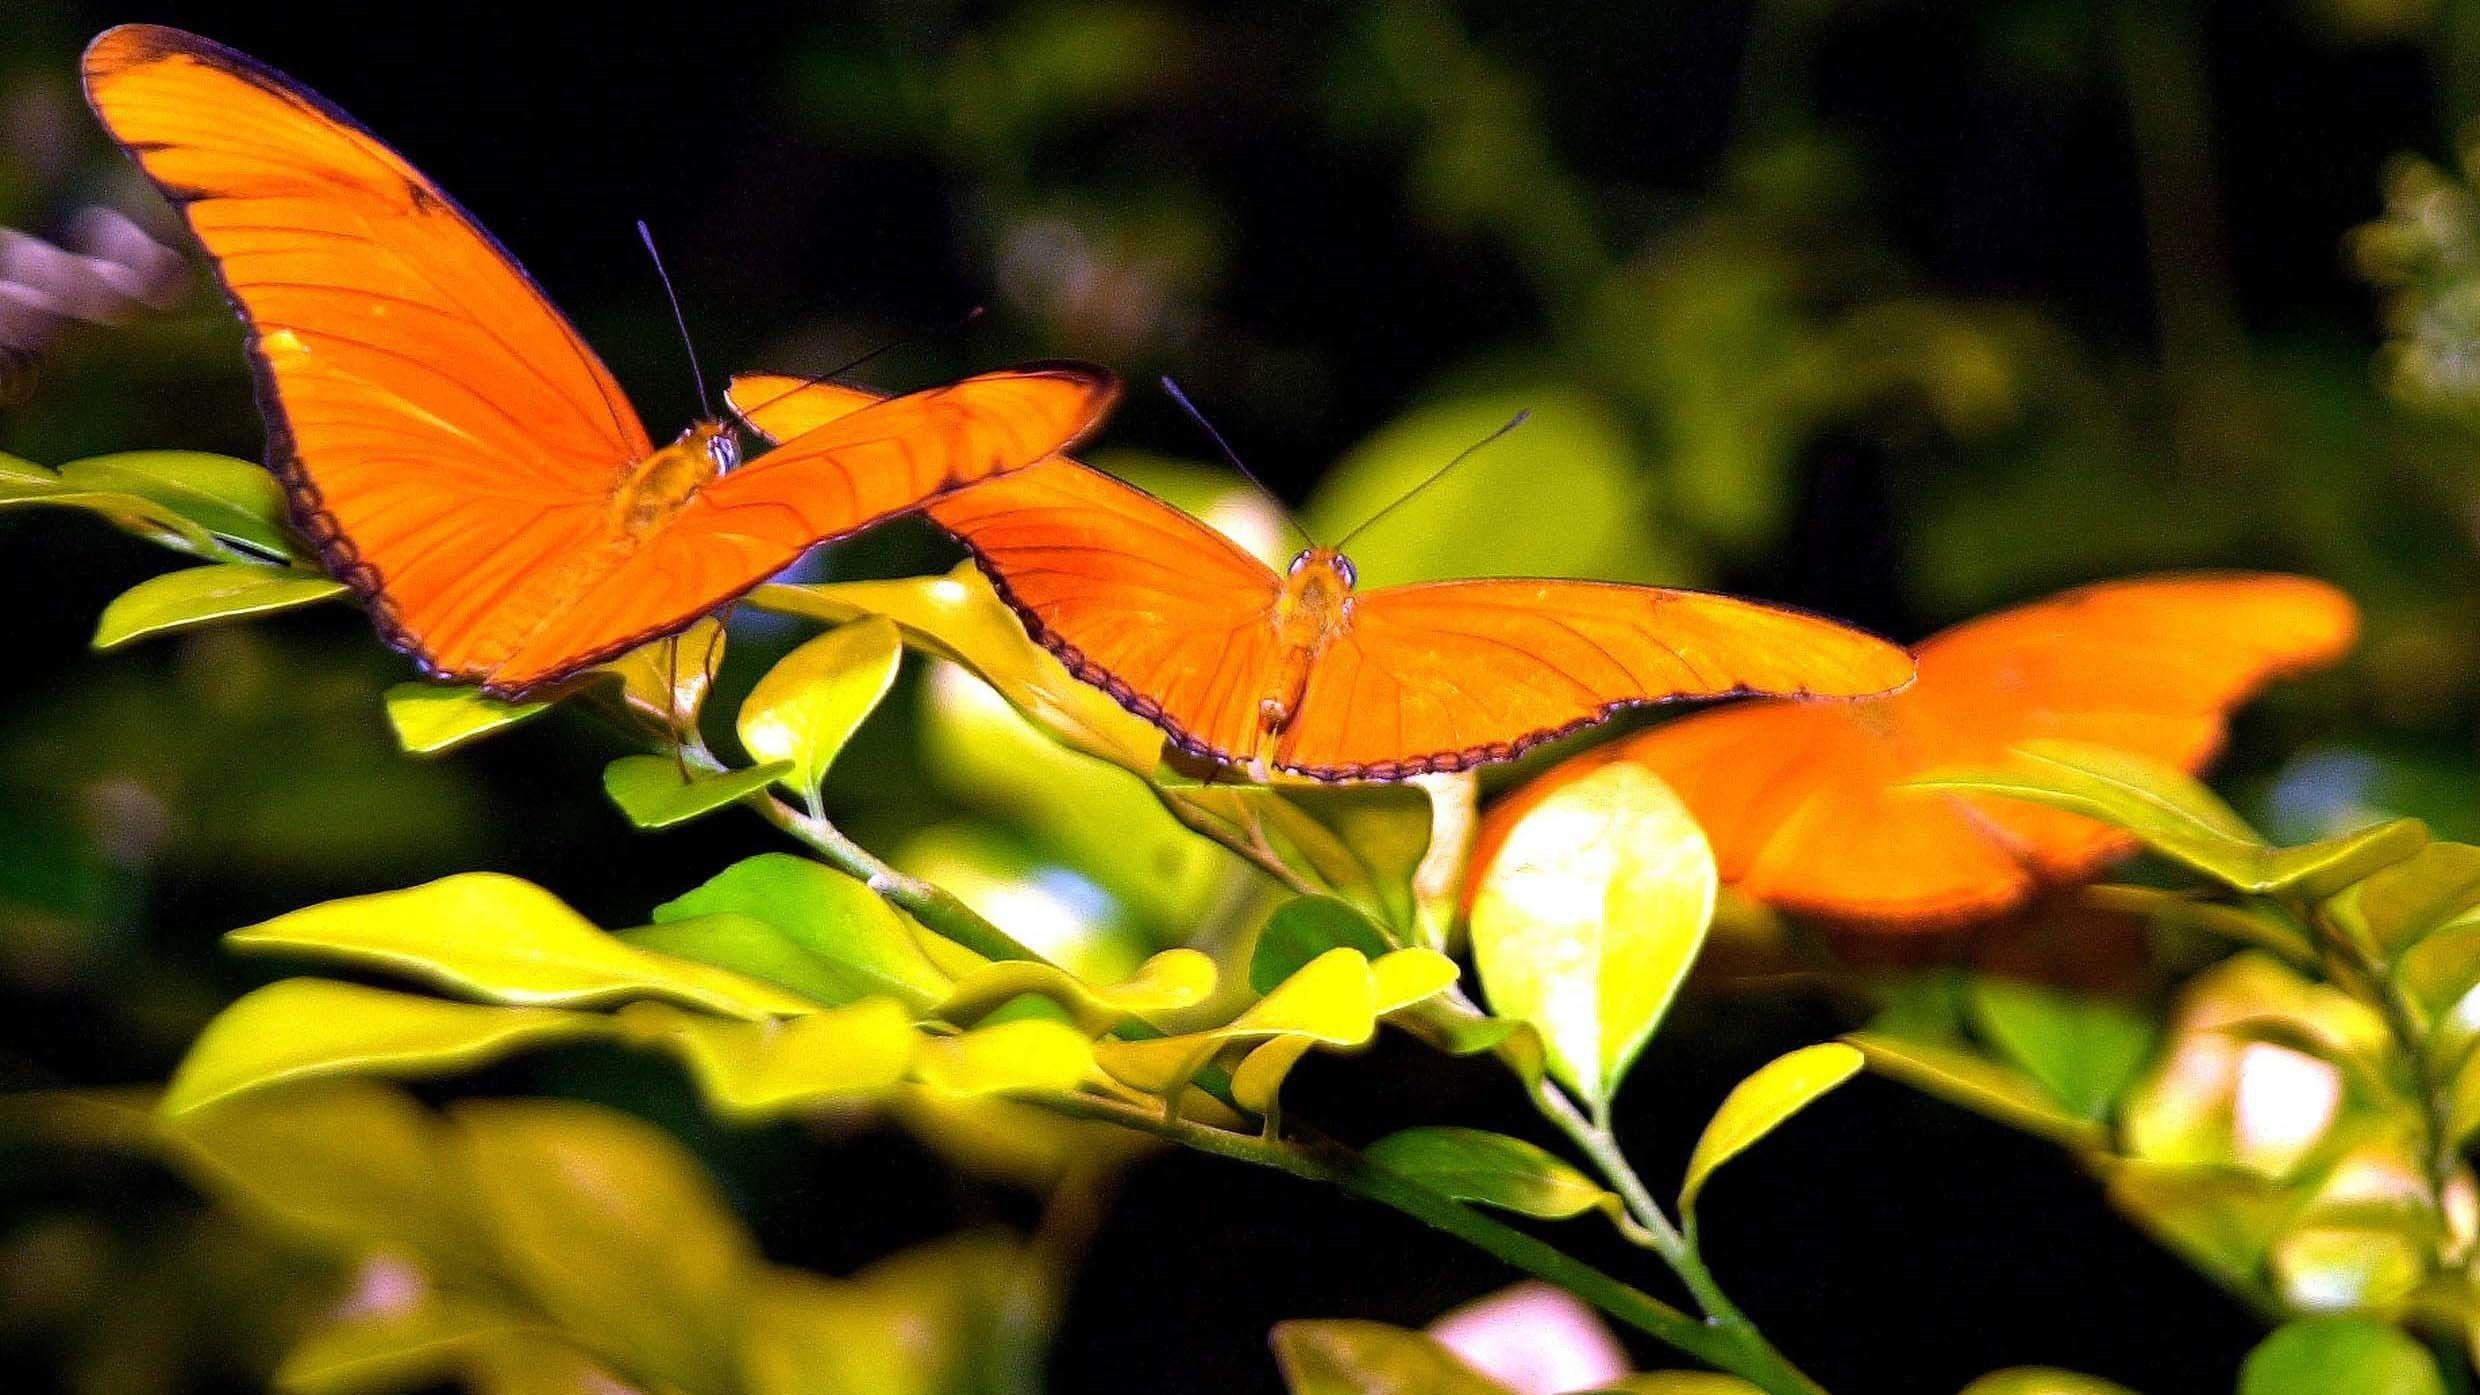 Orange butterflies perched on leaves at American Museum of Natural History in New York